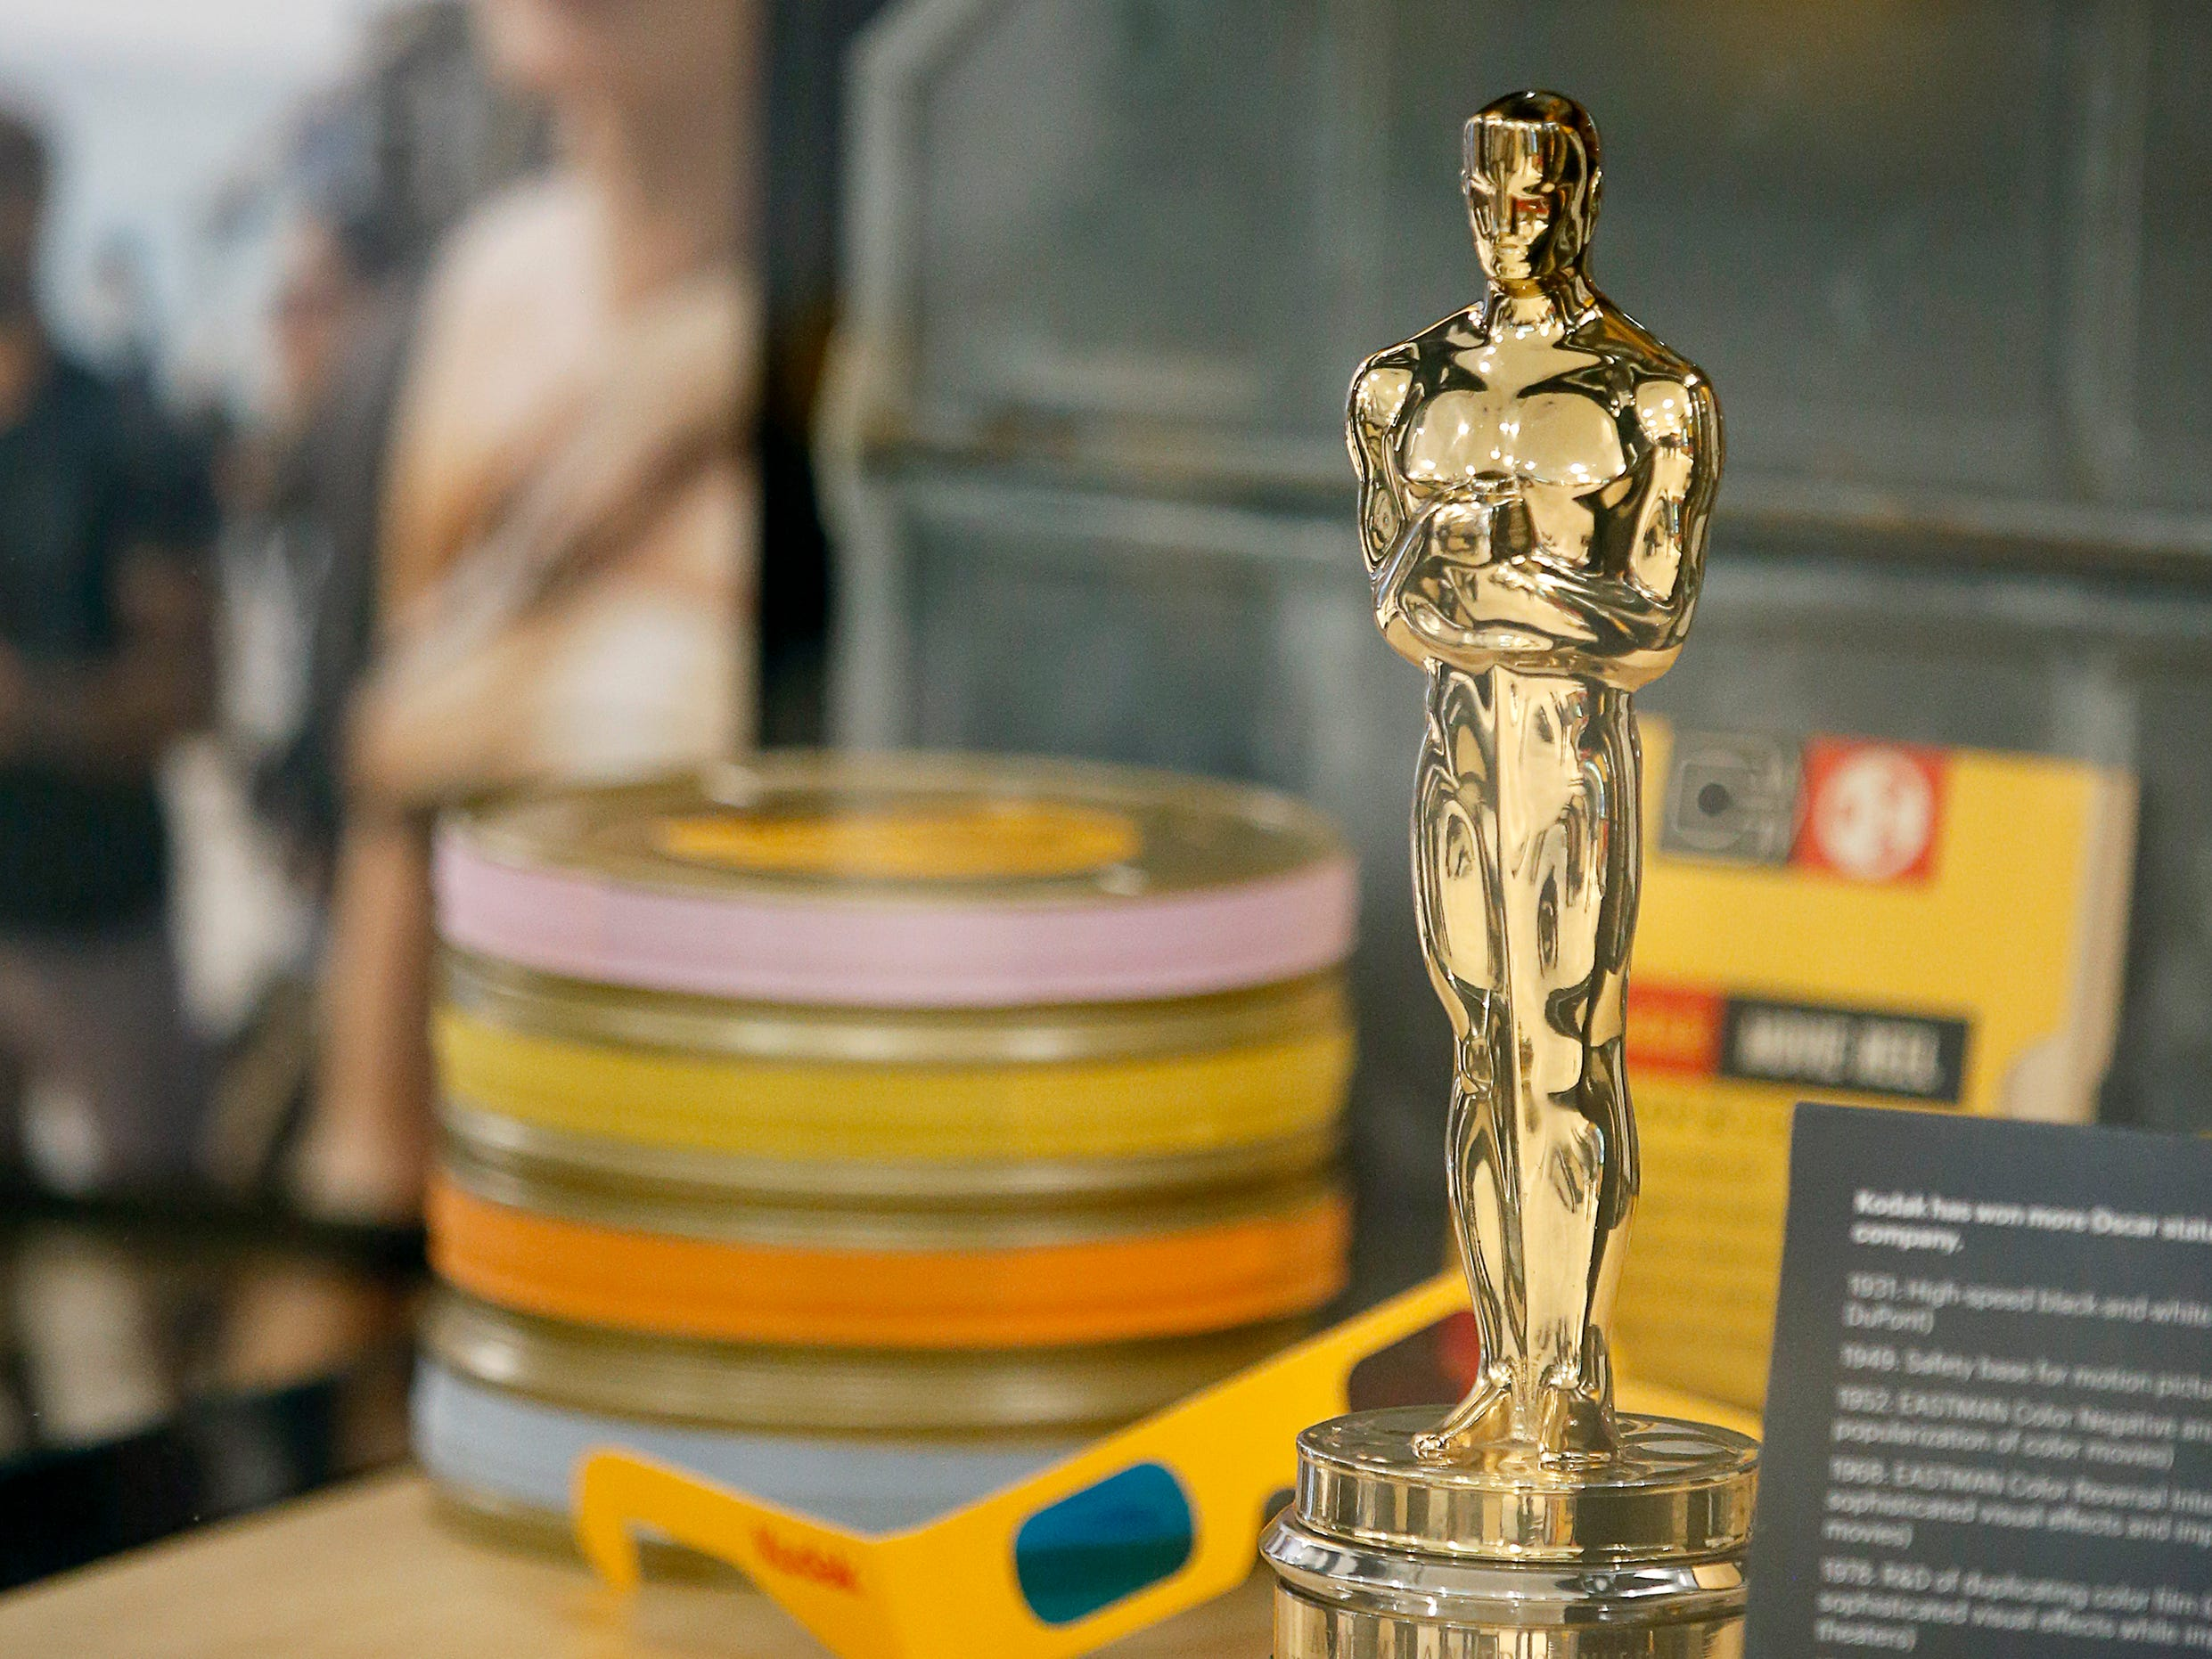 Kodak has won more Oscar statuettes than any other non-studio company, one of them seen here on display at the Kodak Visitor Center Grand.